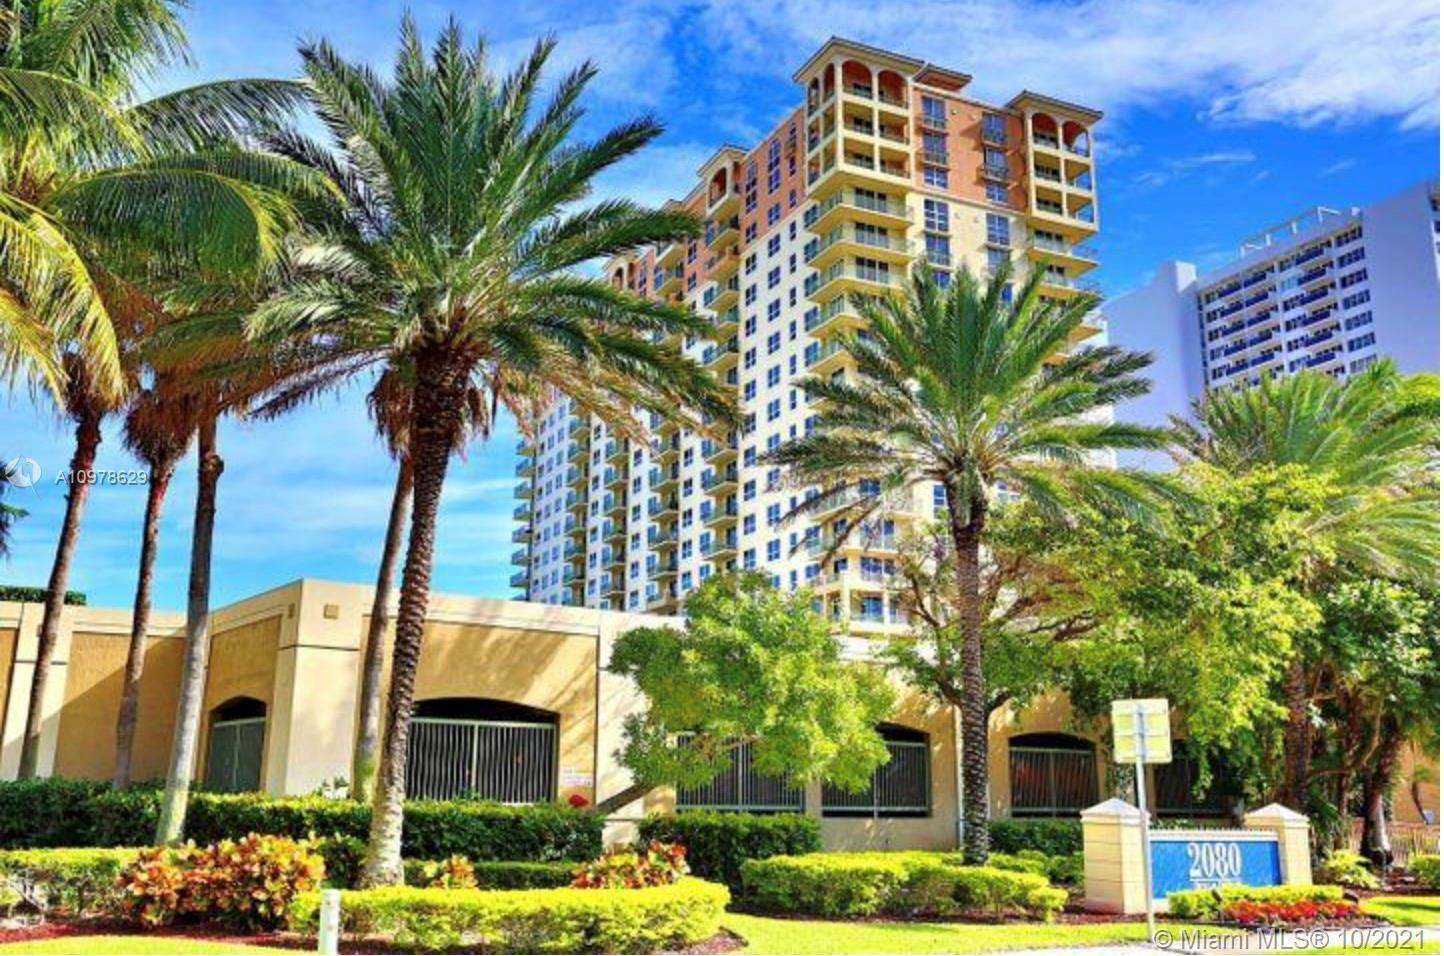 Exclusive beachfront 2/2 apartment on Hallandale Beach. Five-Star building with great amenities. New